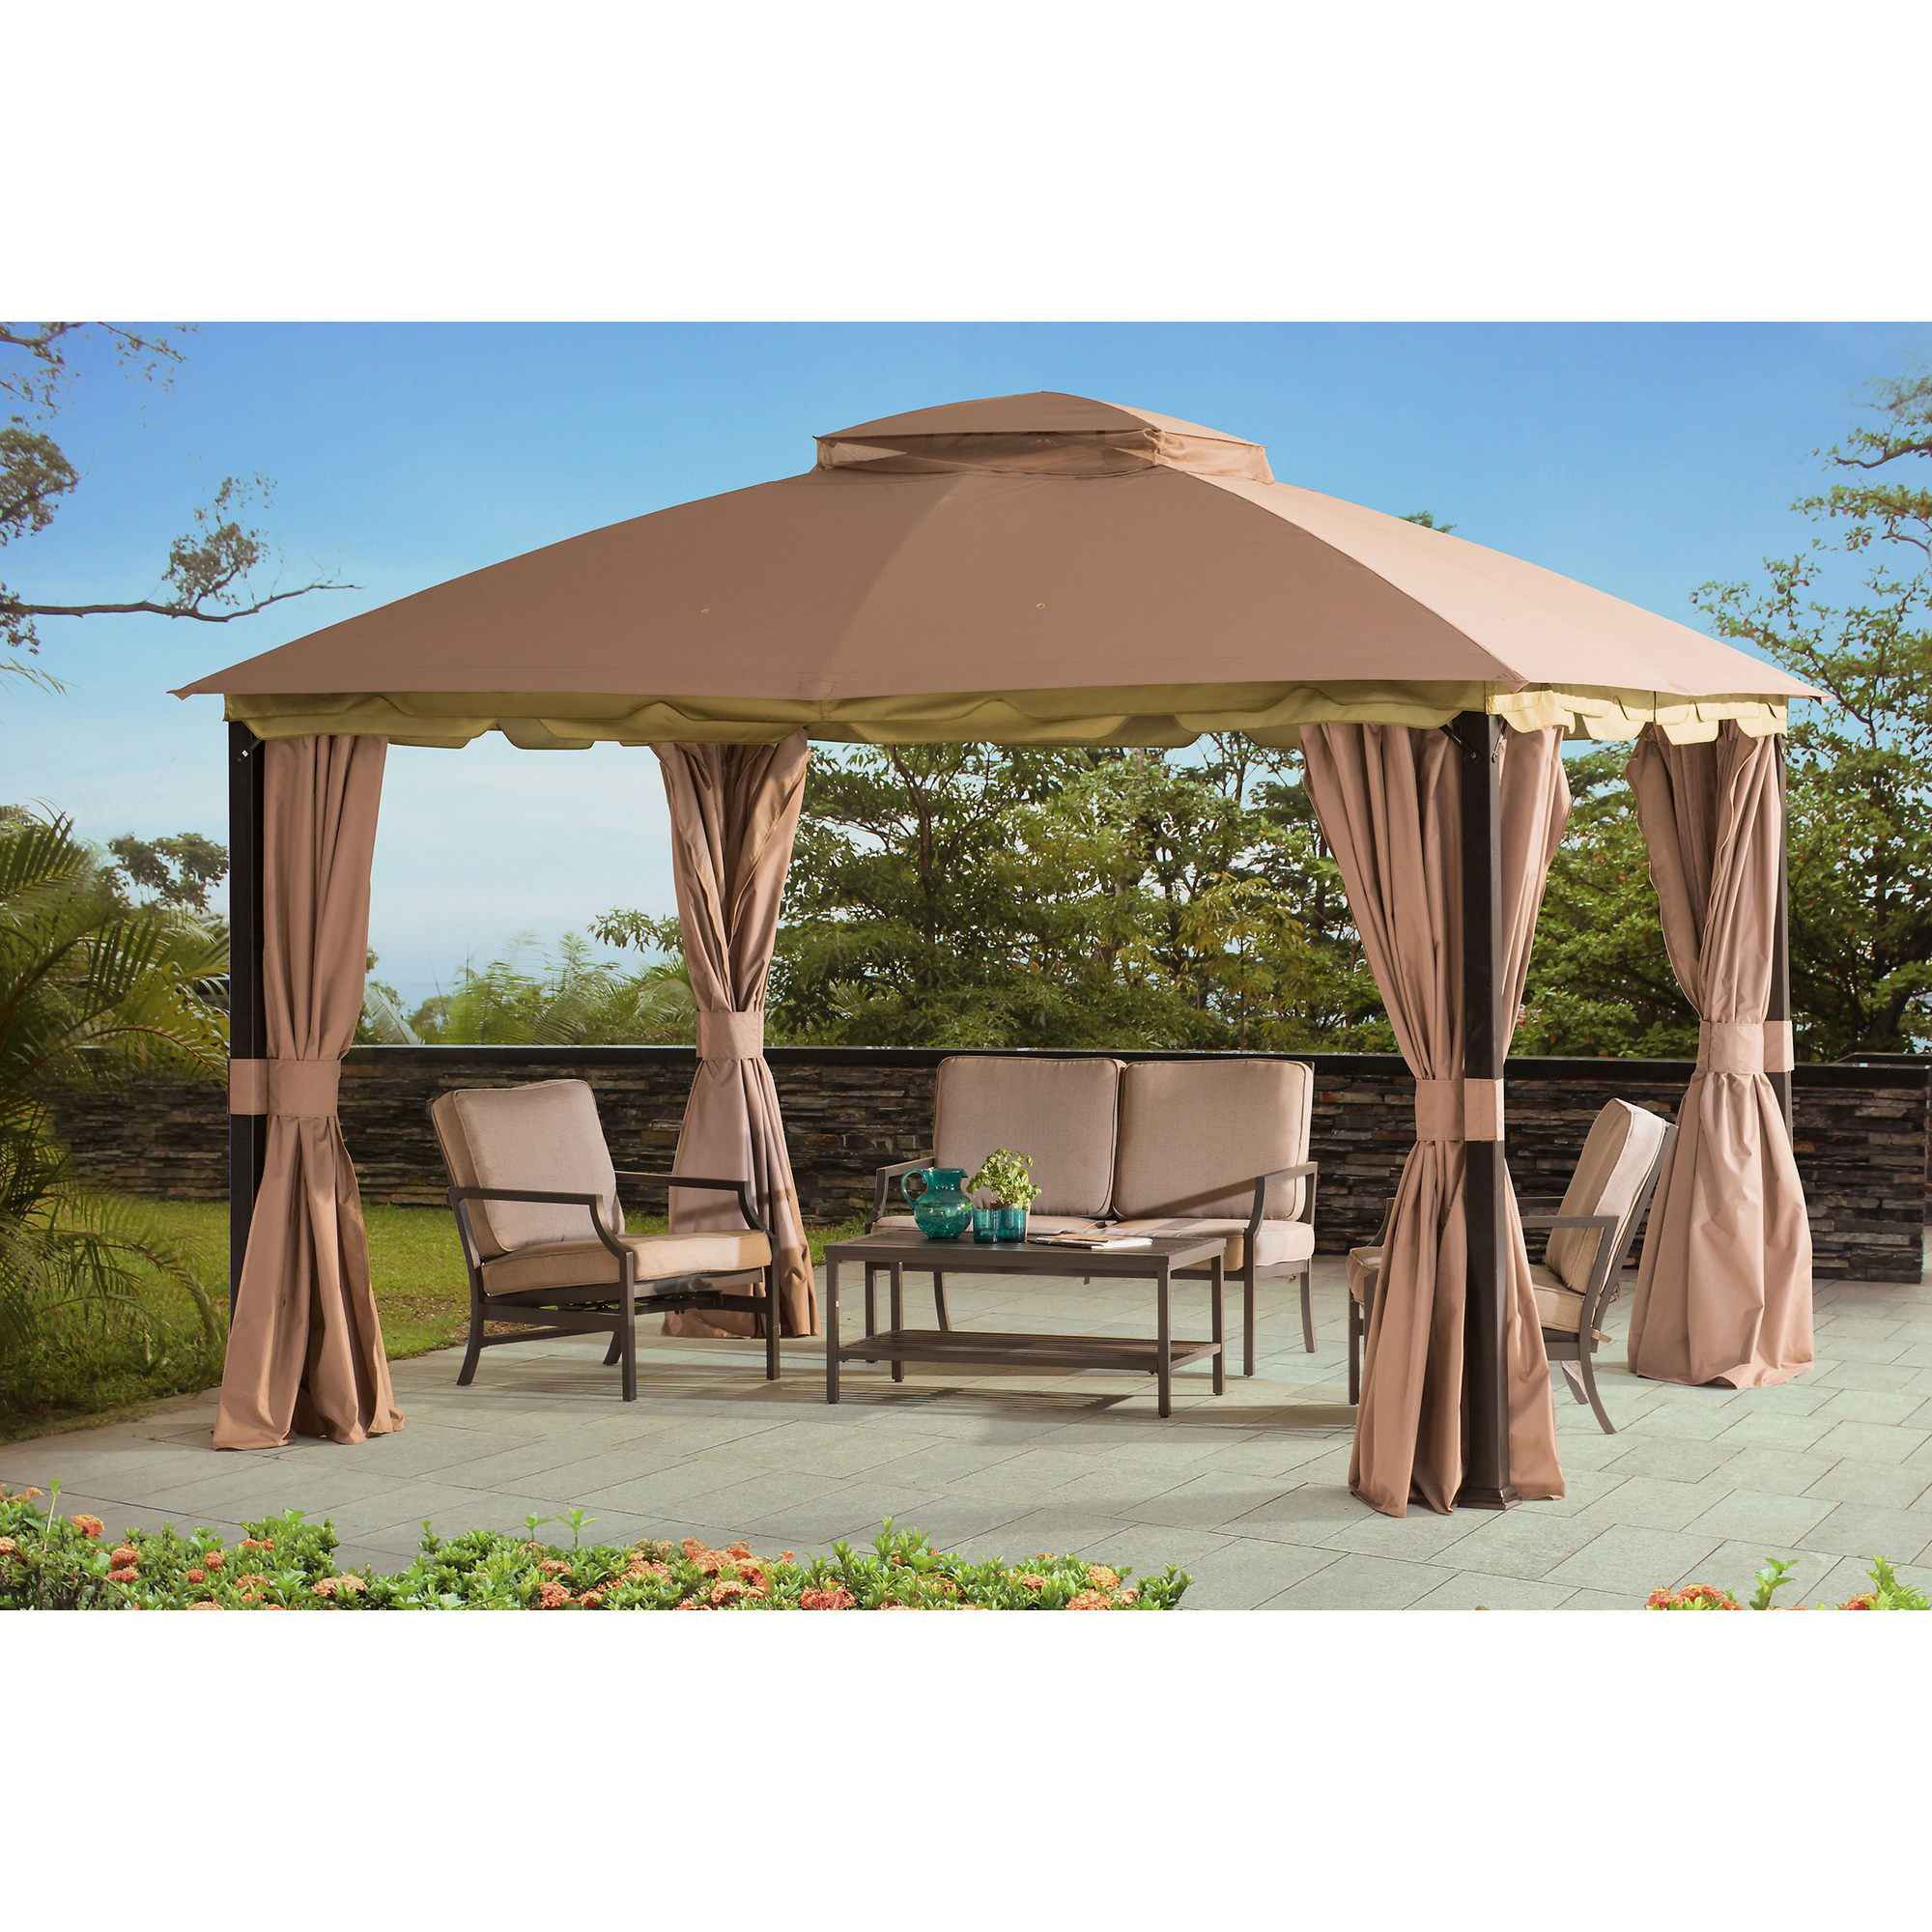 Fascinating sunjoy gazebo for garden ideas with sunjoy hardtop gazebo and sunjoy grill gazebo